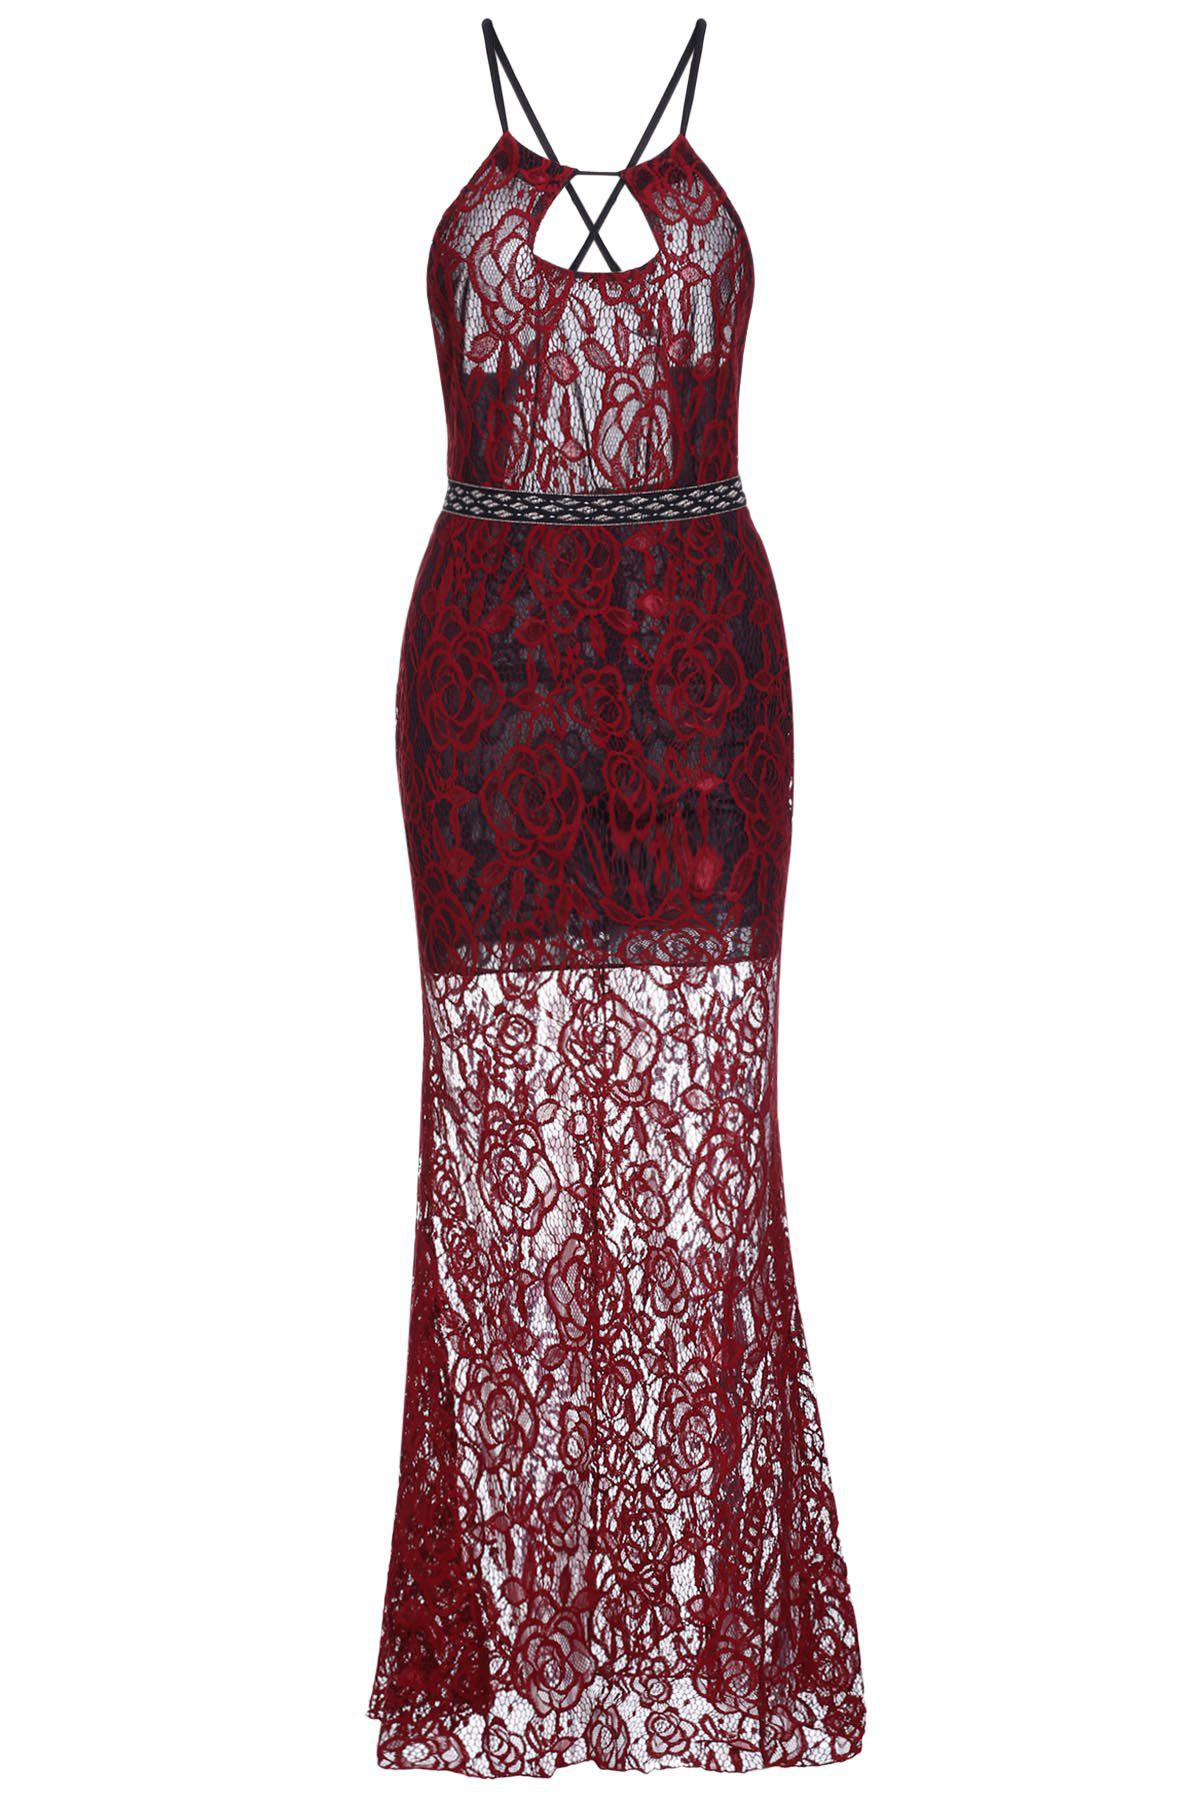 Elegant Backless Breast Hollow Out High Waist Bodycon Lace Maxi Dress For Women - RED S